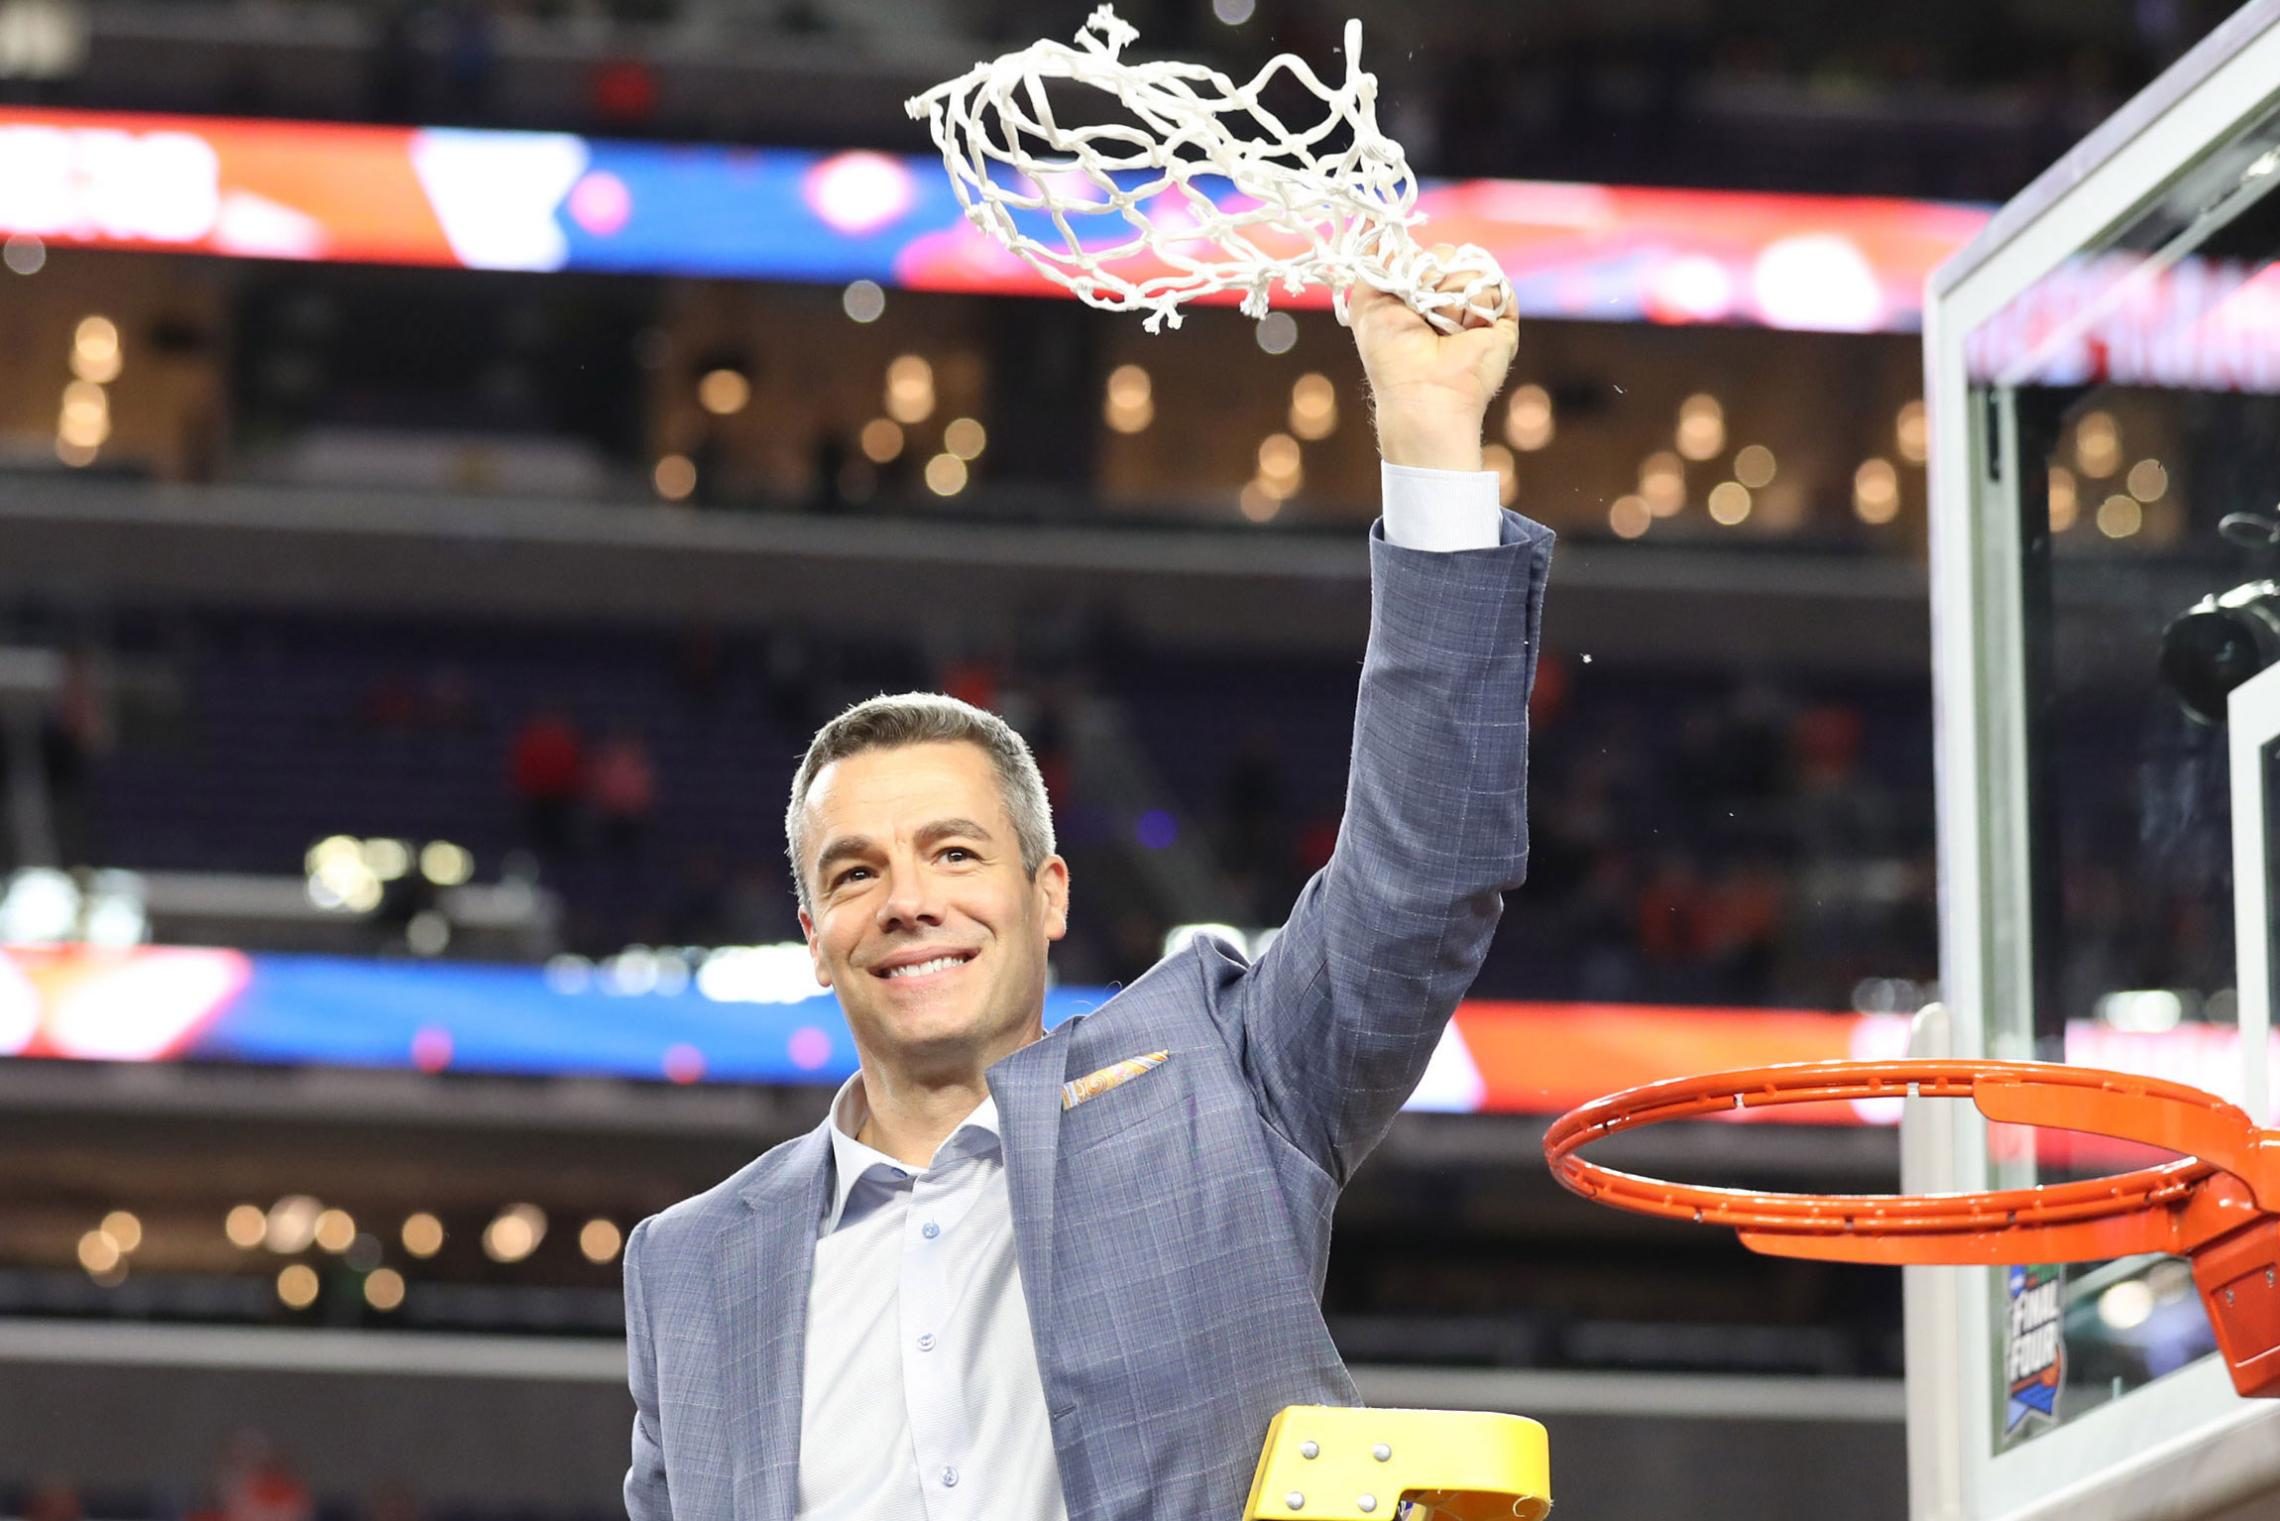 """Tony Bennett, Dean and Markel Families Men's Basketball Head Coach, said he was """"blessed beyond what I deserve,"""" declined a raise and made a gift to a career development program for his players."""